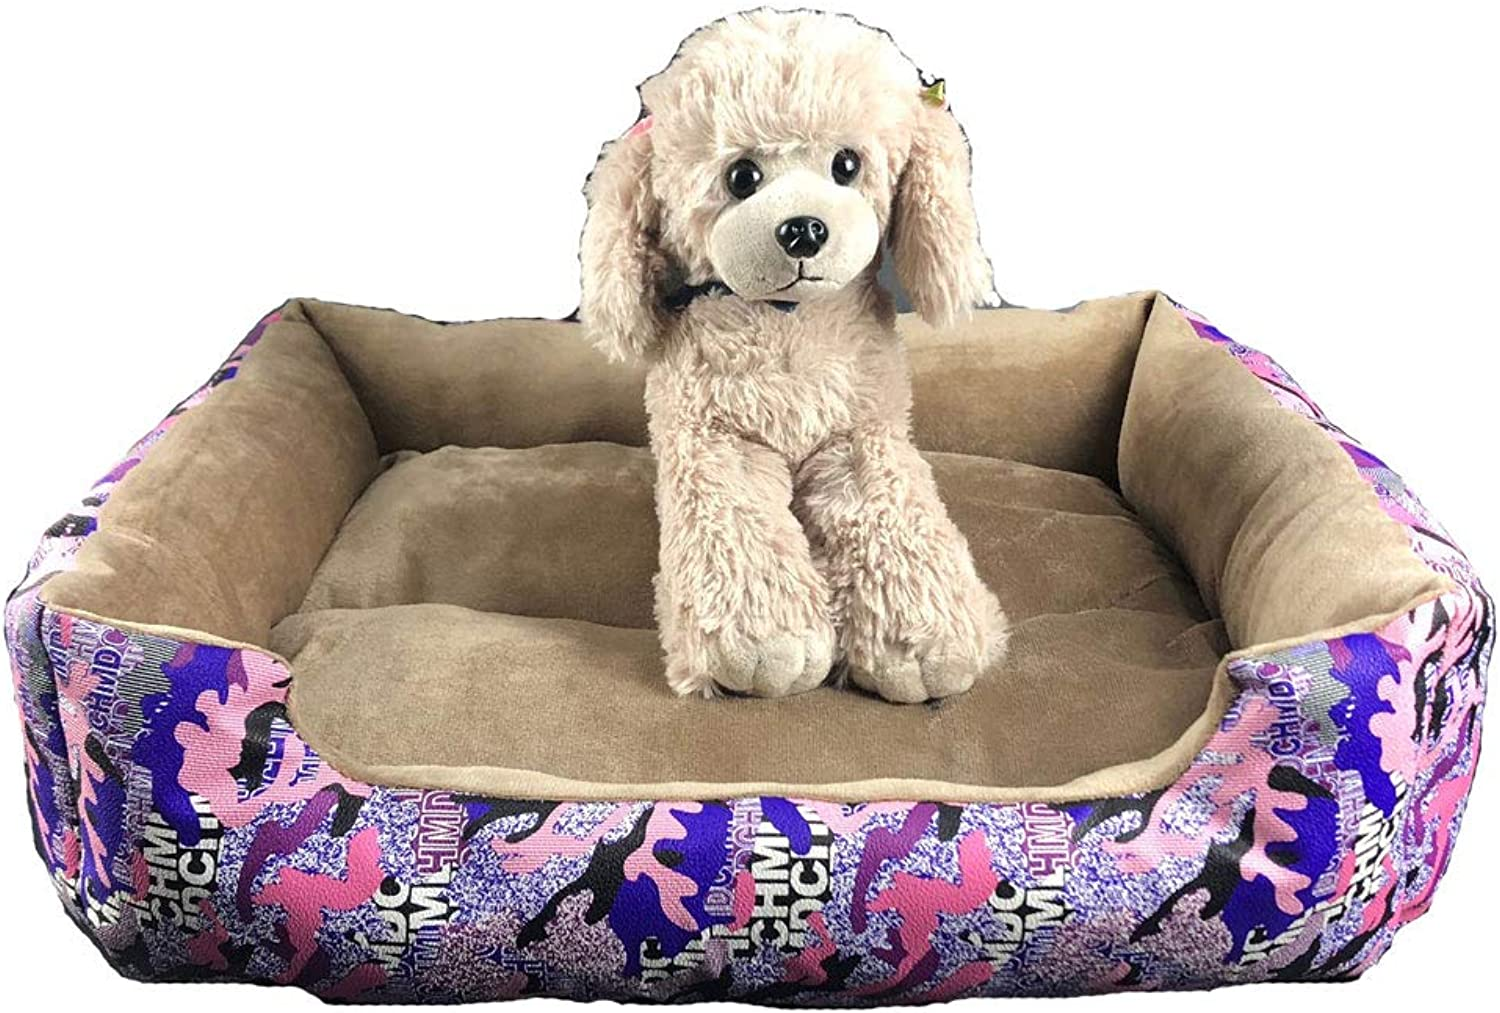 Obzk Waterproof Pet Bed Four Seasons Universal Warm Soft Cat Litter Kennel Wear Resistant Bite Pad Suitable For Cats And Puppies,Purple,L